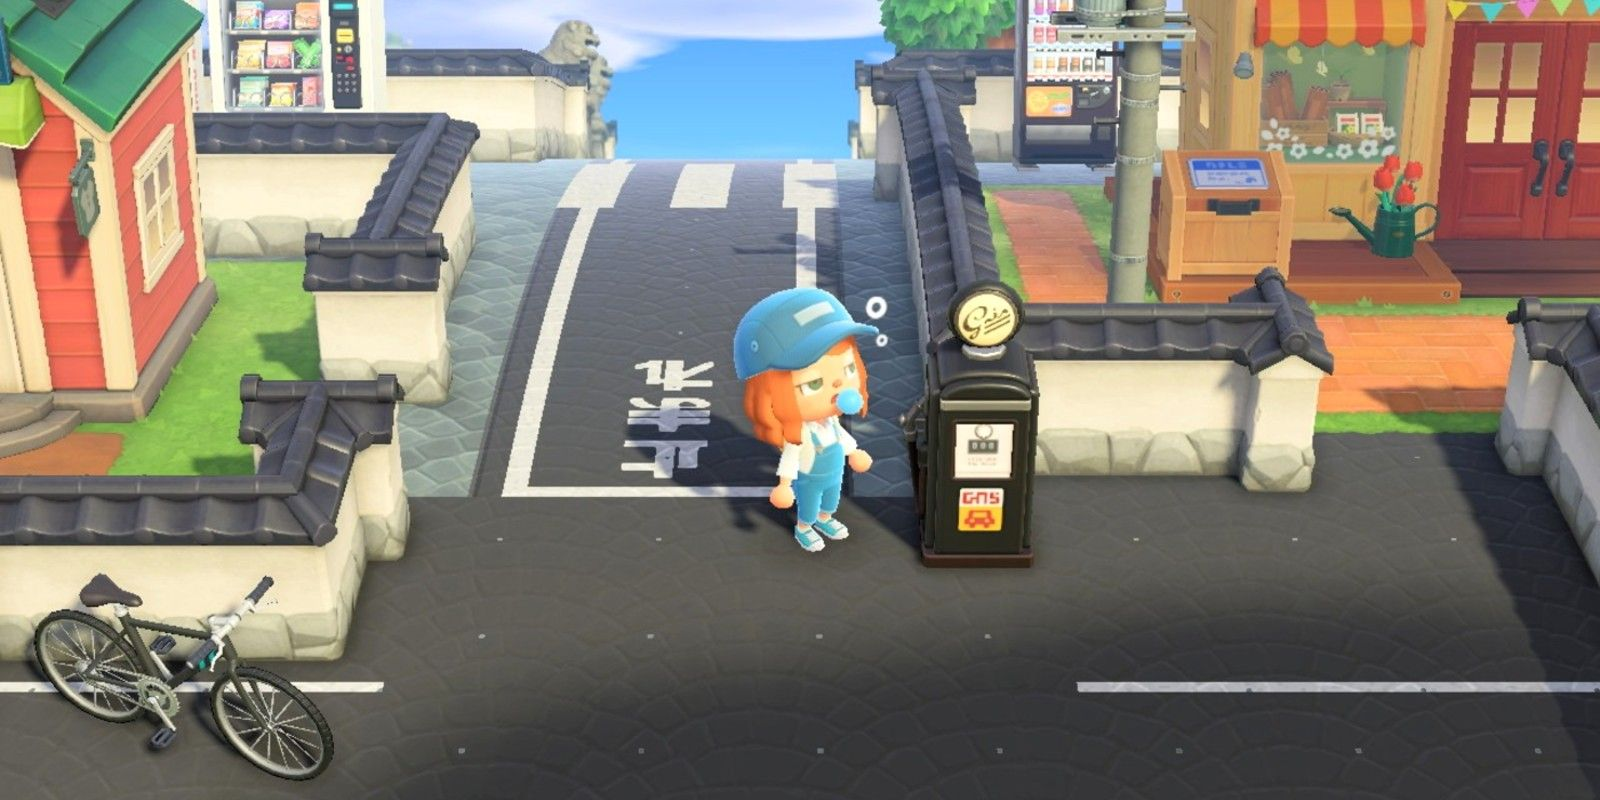 Urban Inspired Design Ideas Tips In Animal Crossing New Horizons